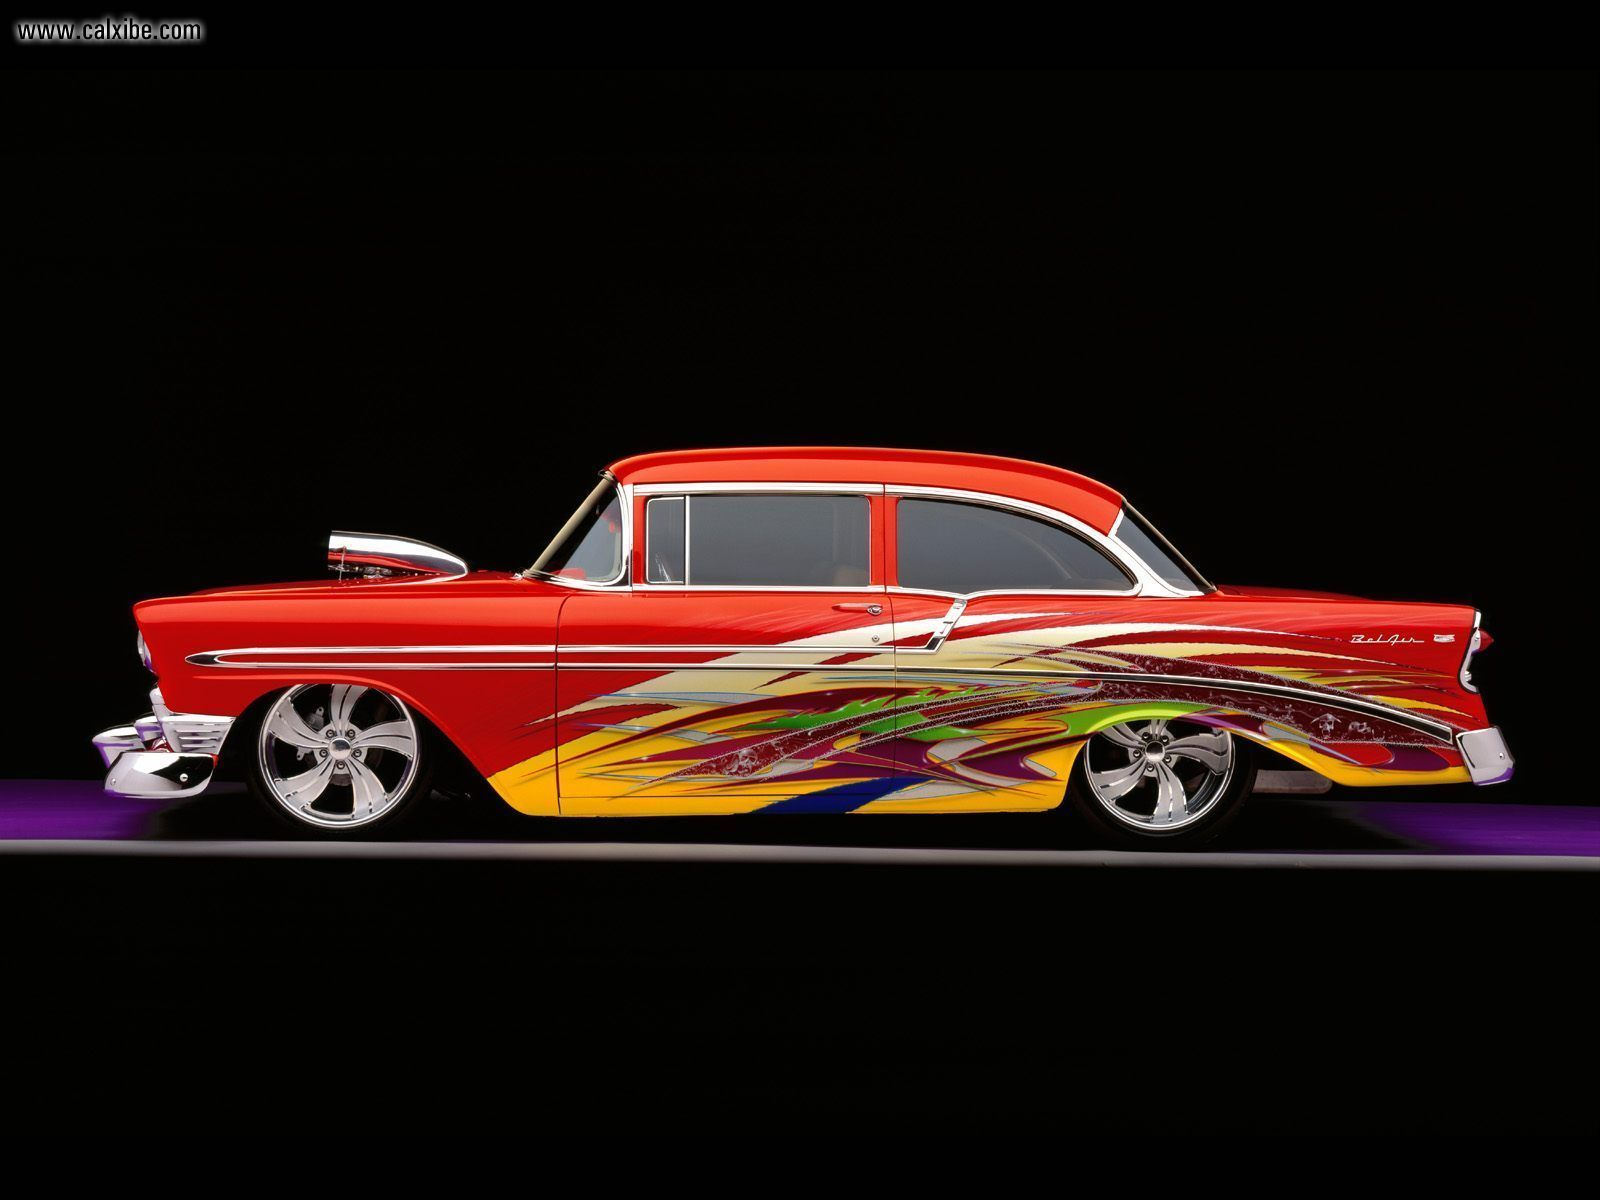 57 Chevy Bel Air Custom Totally Diggin The Paint Job 1966 Chevrolet Rear View